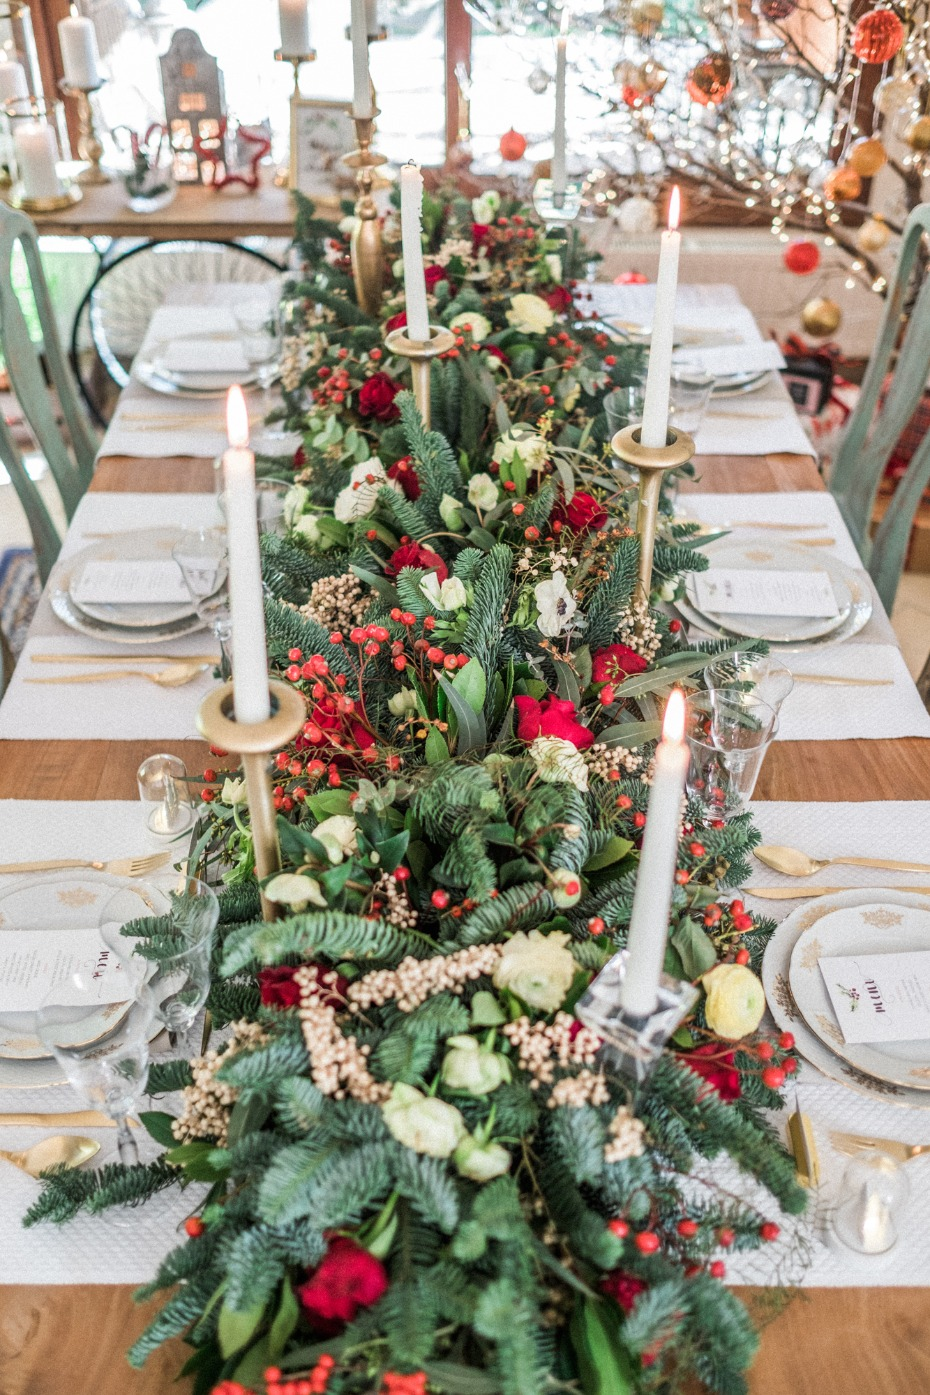 Stunning Christmas centerpiece with candles